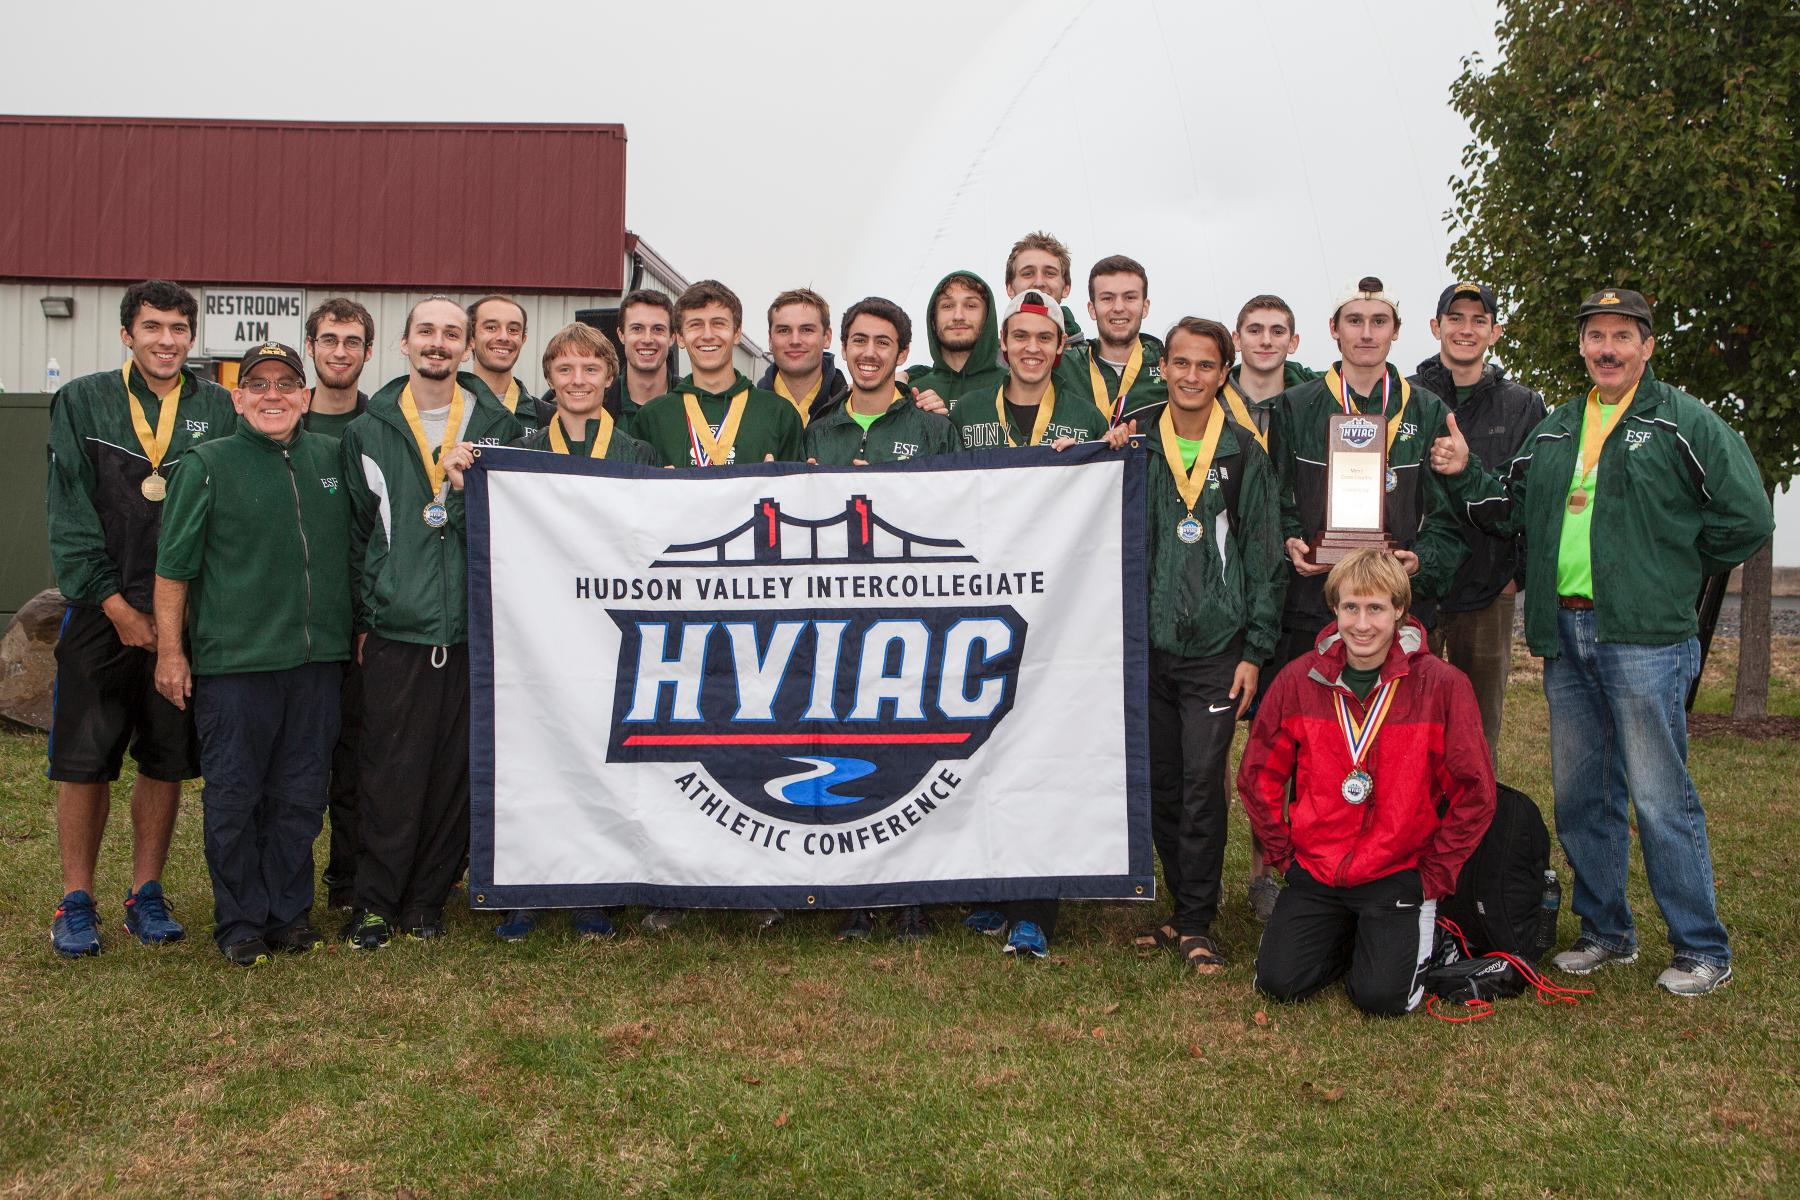 SUNY ESF Repeats as Men's Cross Country Champions